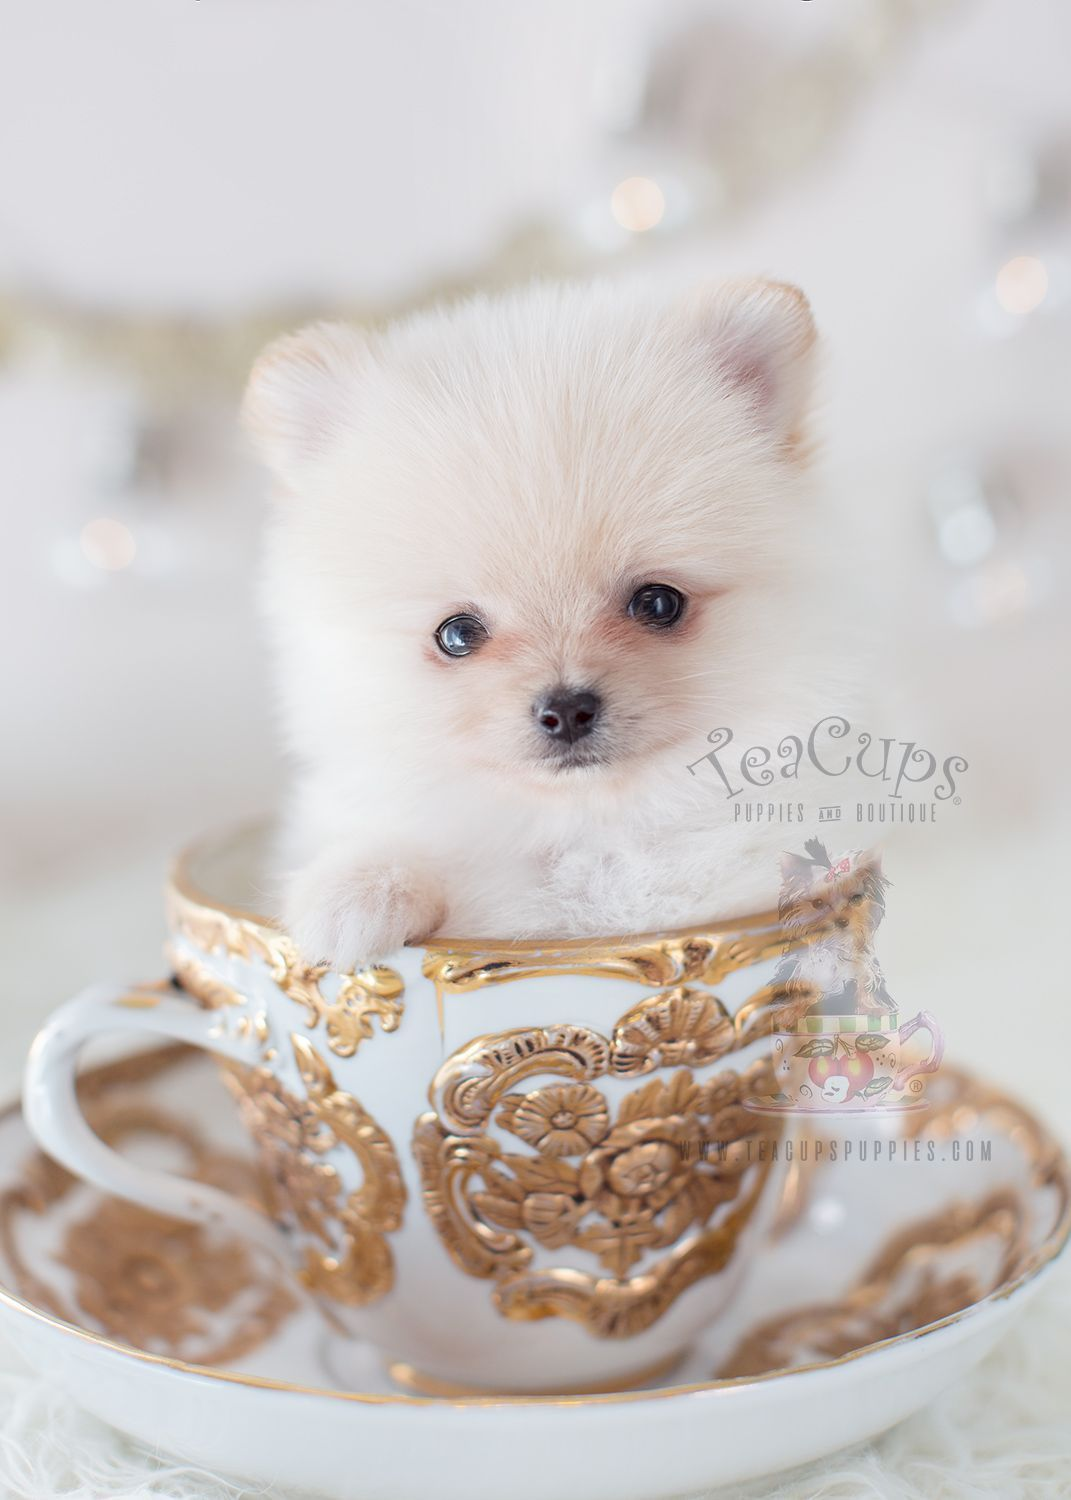 For sale 309 teacup puppies pomeranian puppy pomeranian - Cute pomeranian teacup puppy ...